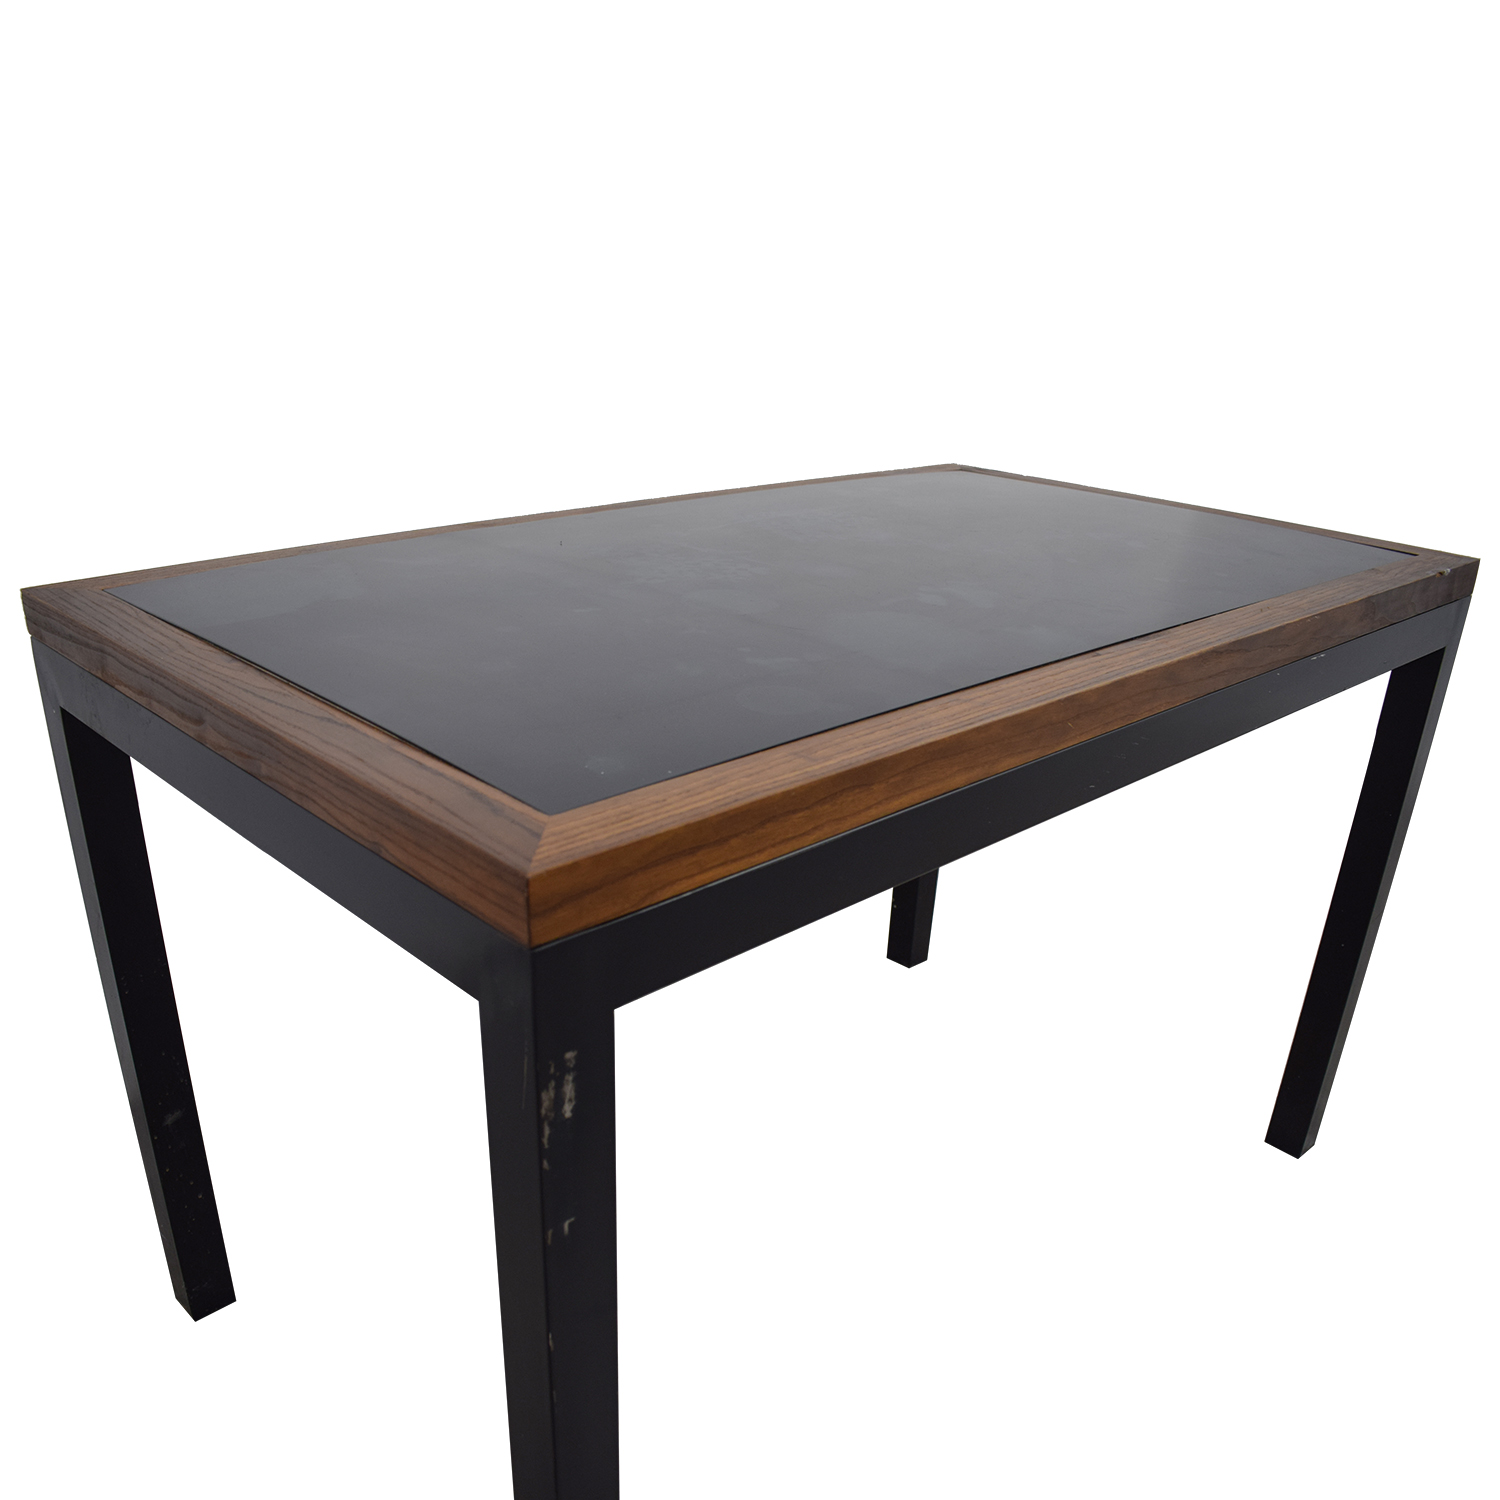 88 Off Black Wood And Metal Table Tables